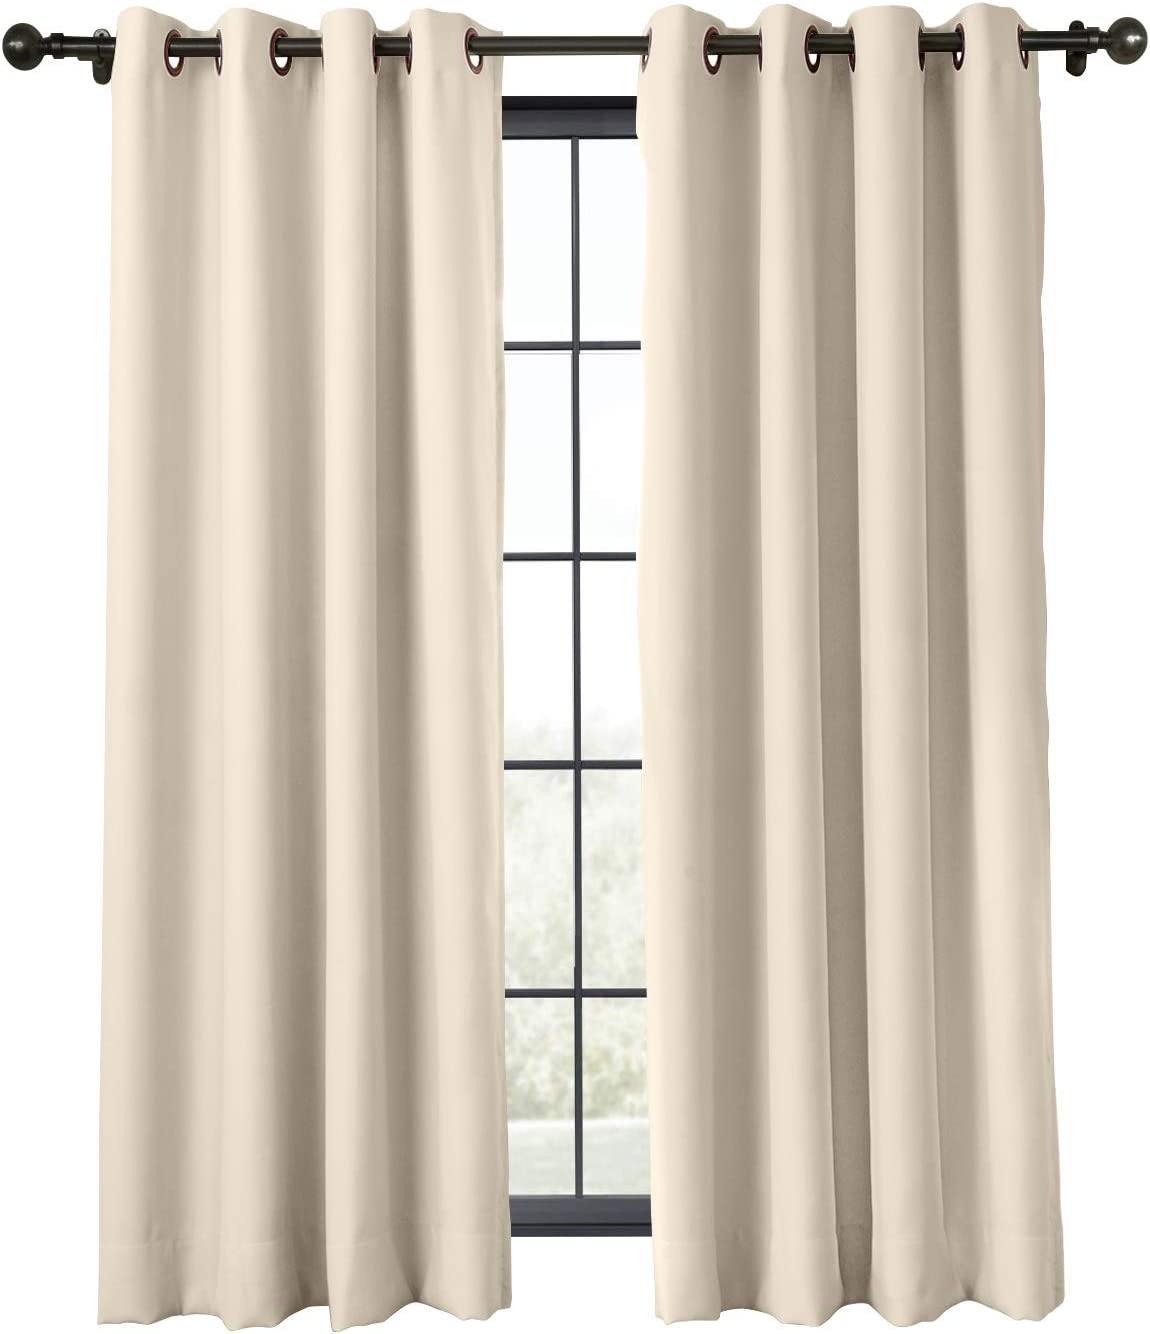 ChadMade Flame Retardant Curtain Antique Bronze Grommet Eyelet Beige 52W x 63L Inch Thermal Insulated Blackout (1 Panel) Exclusive